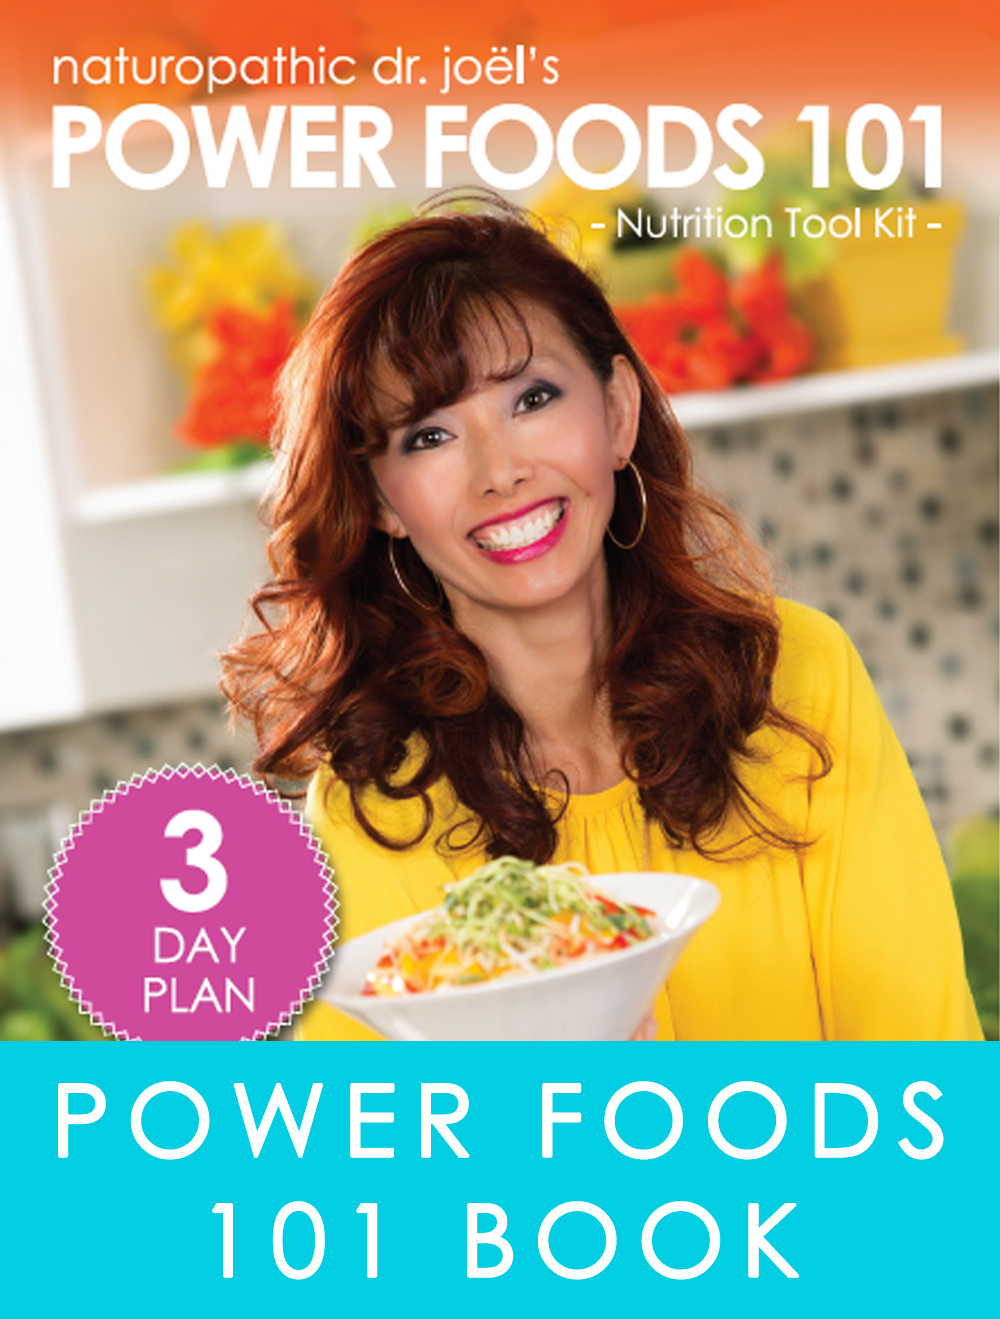 Powerfoods-101-Book NEW.jpg